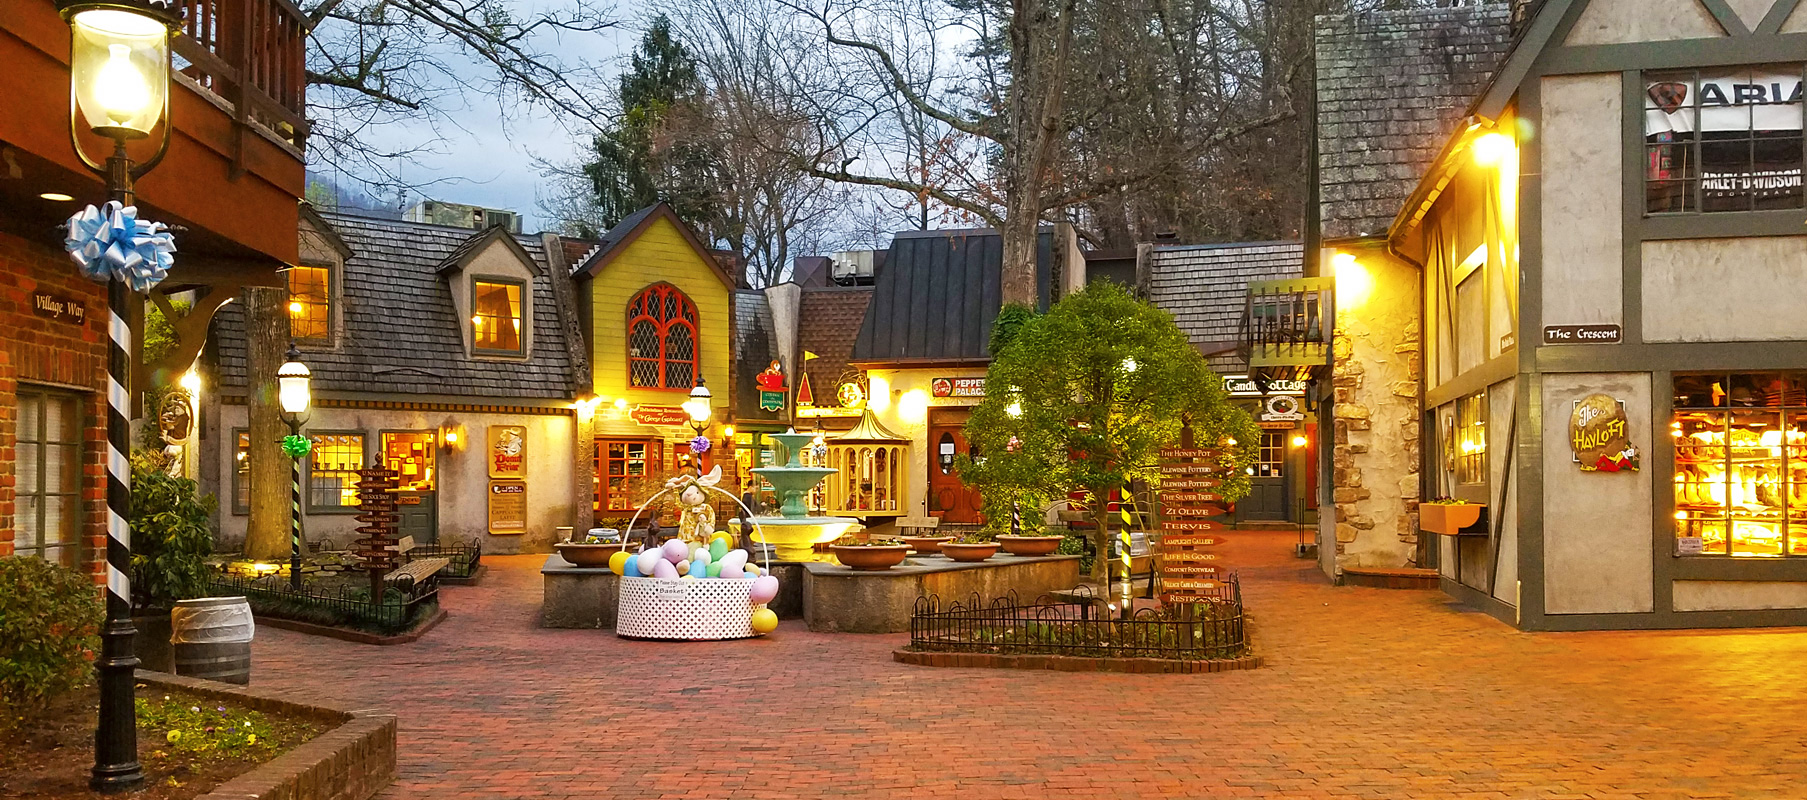 Village candle shop gatlinburg tn webcam